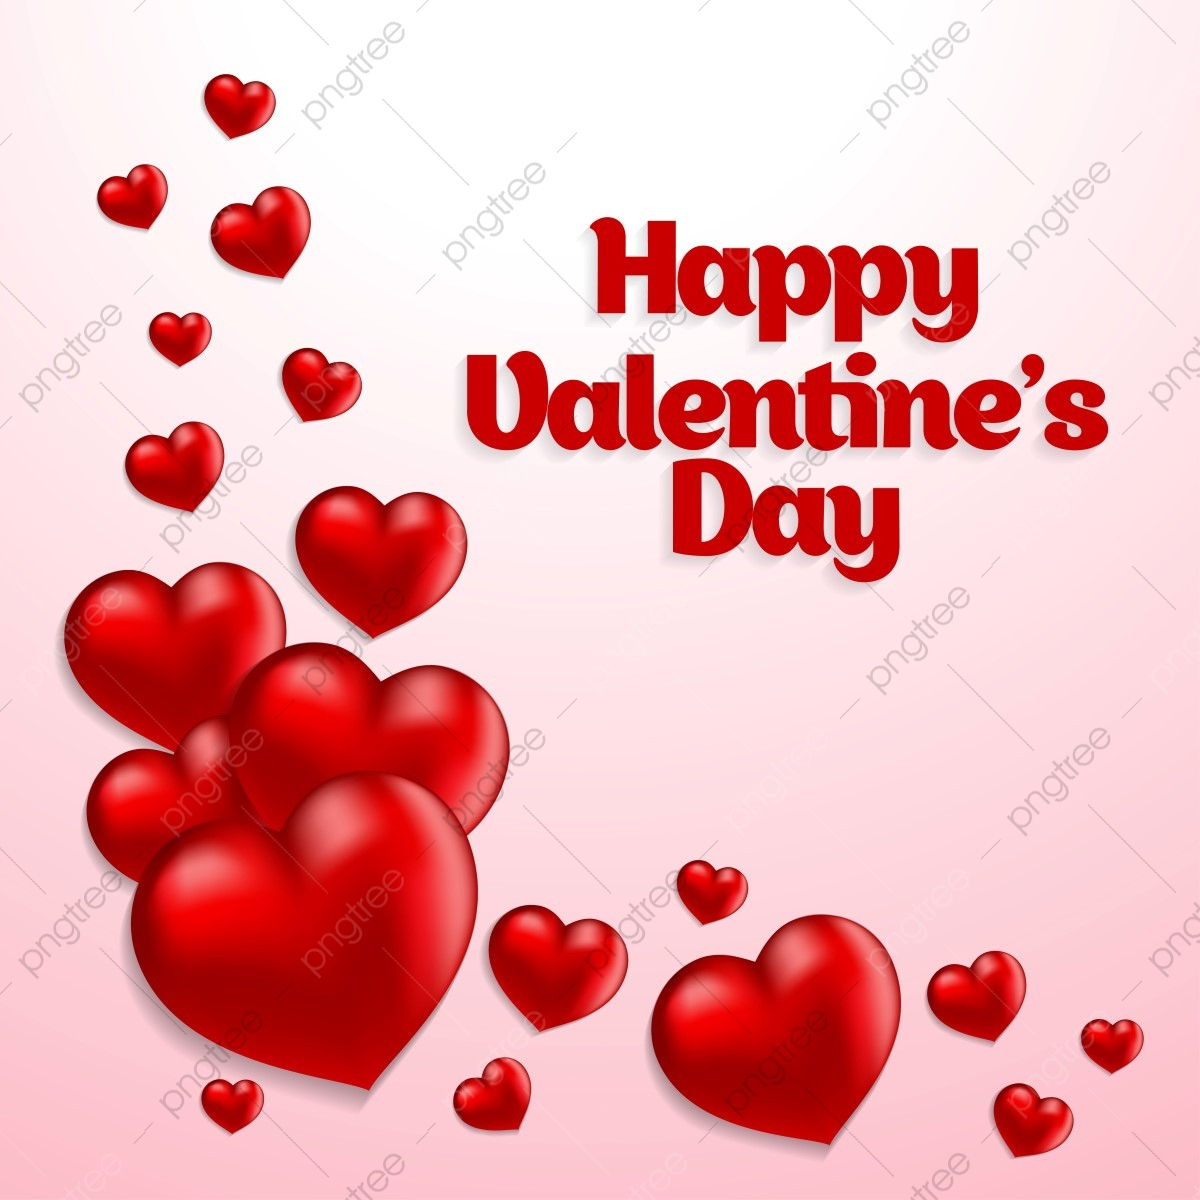 pngtree happy valentines card with hearts and light background png image